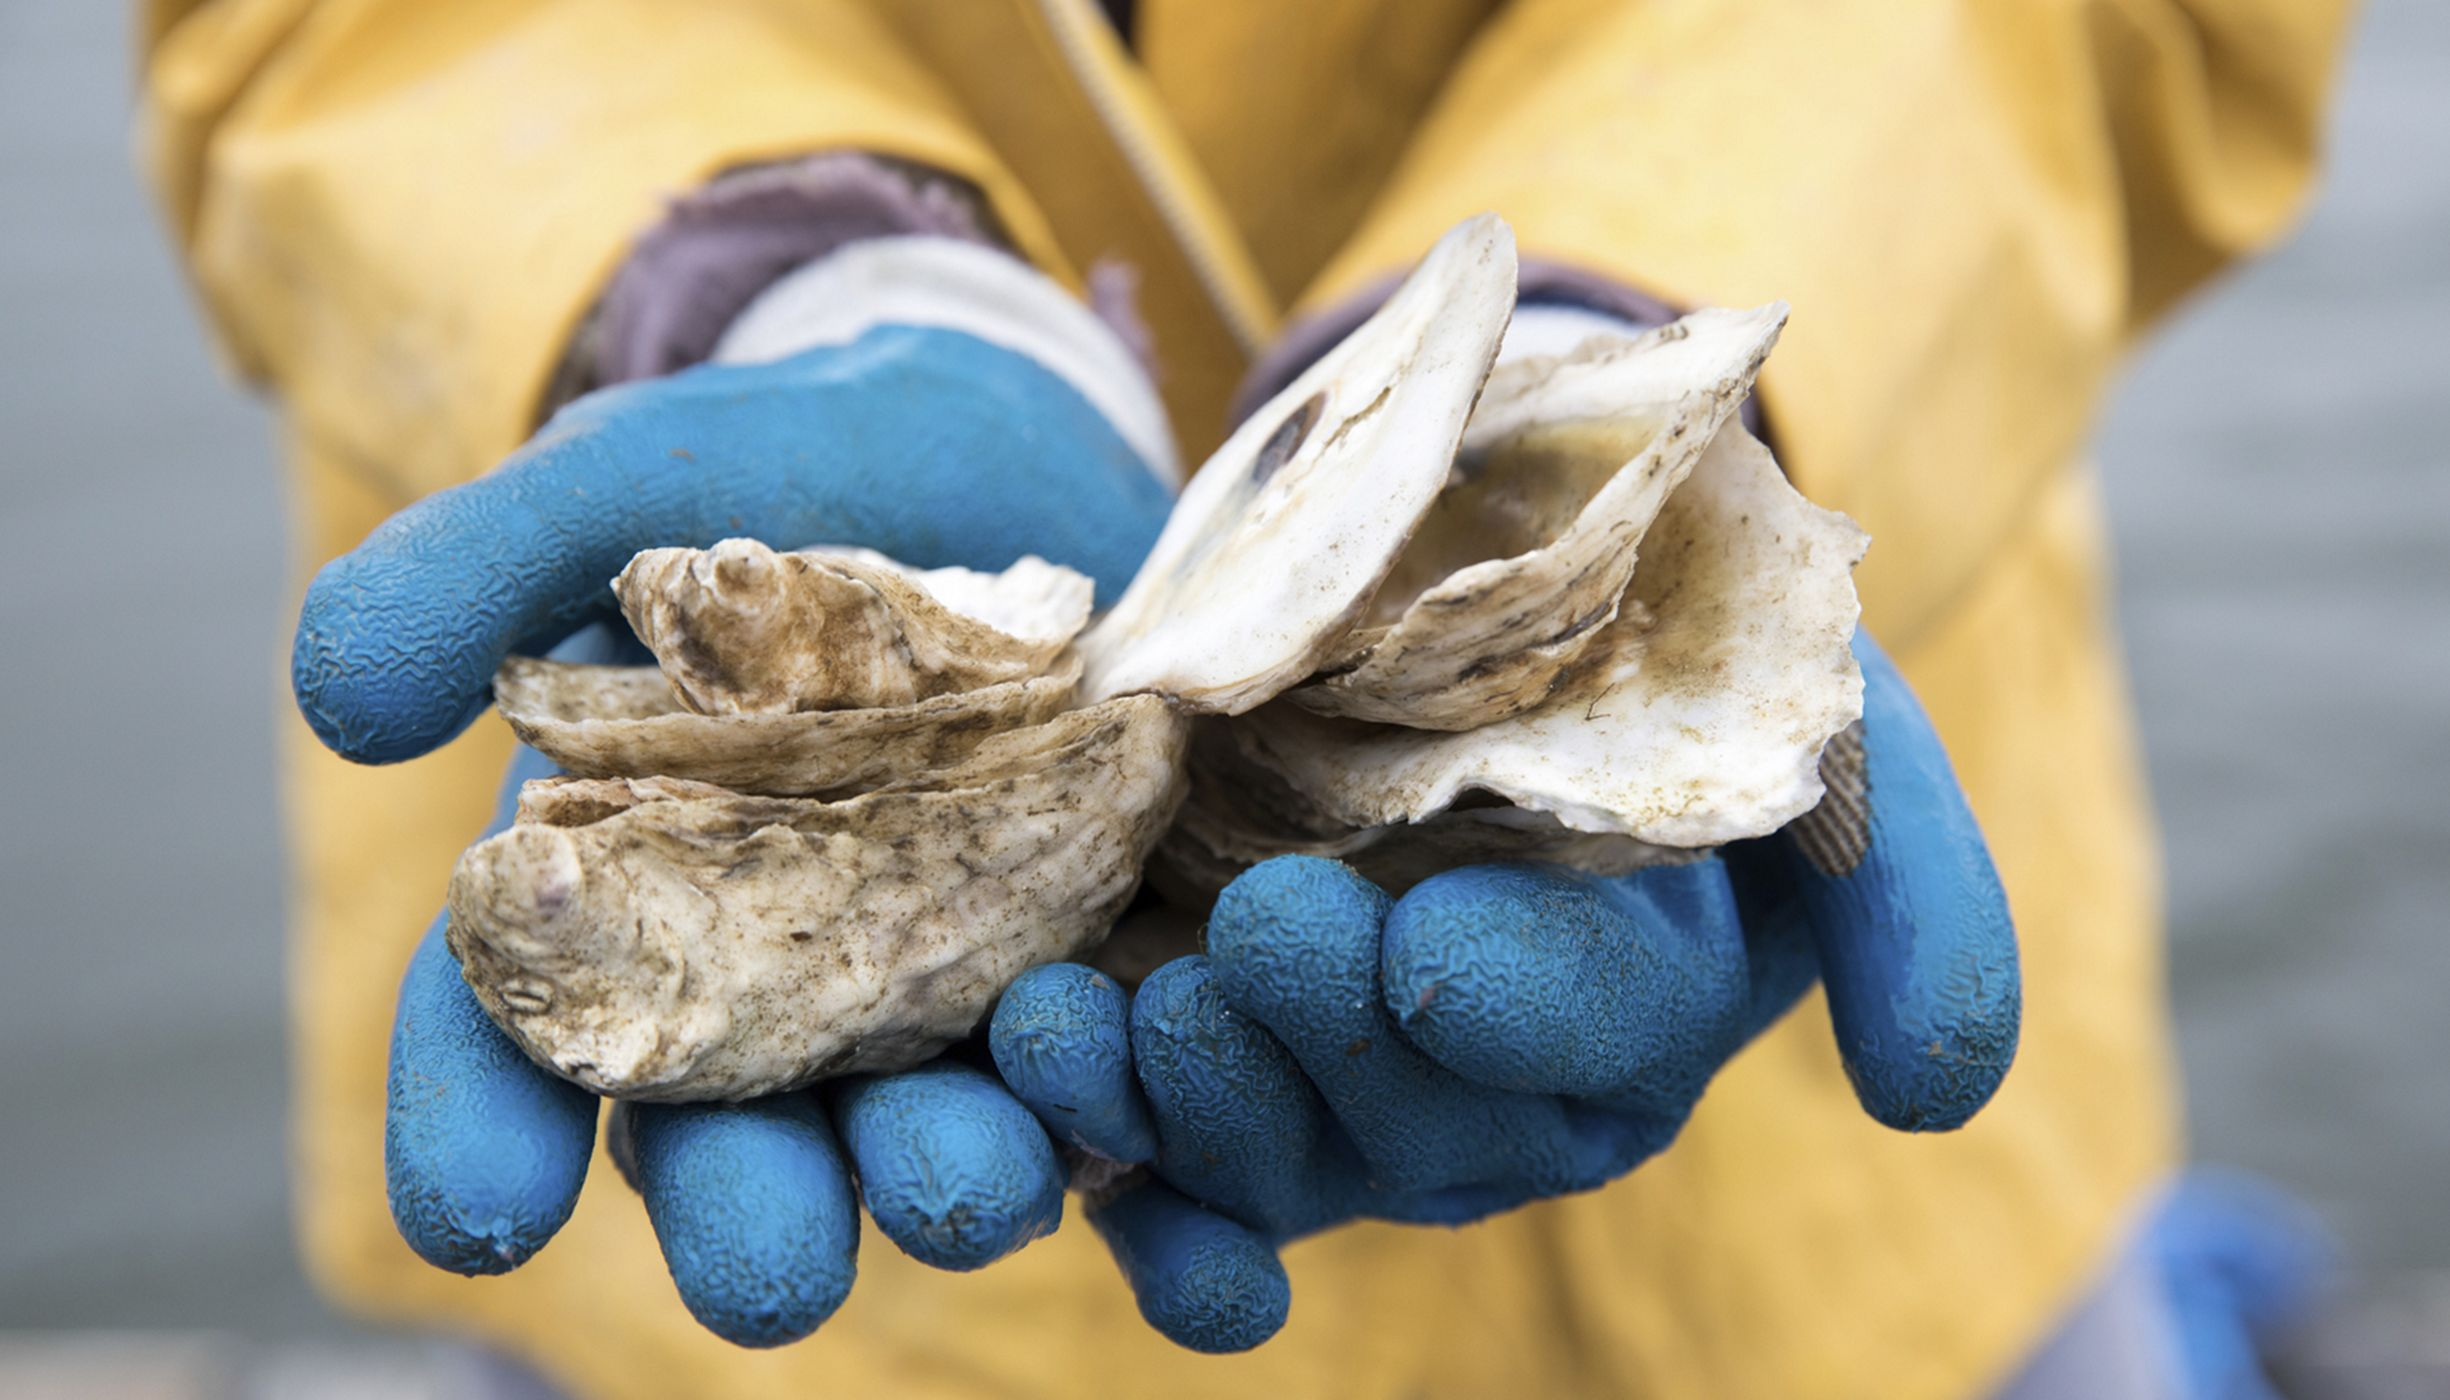 Hands holding oyster spat on a recycled shell.